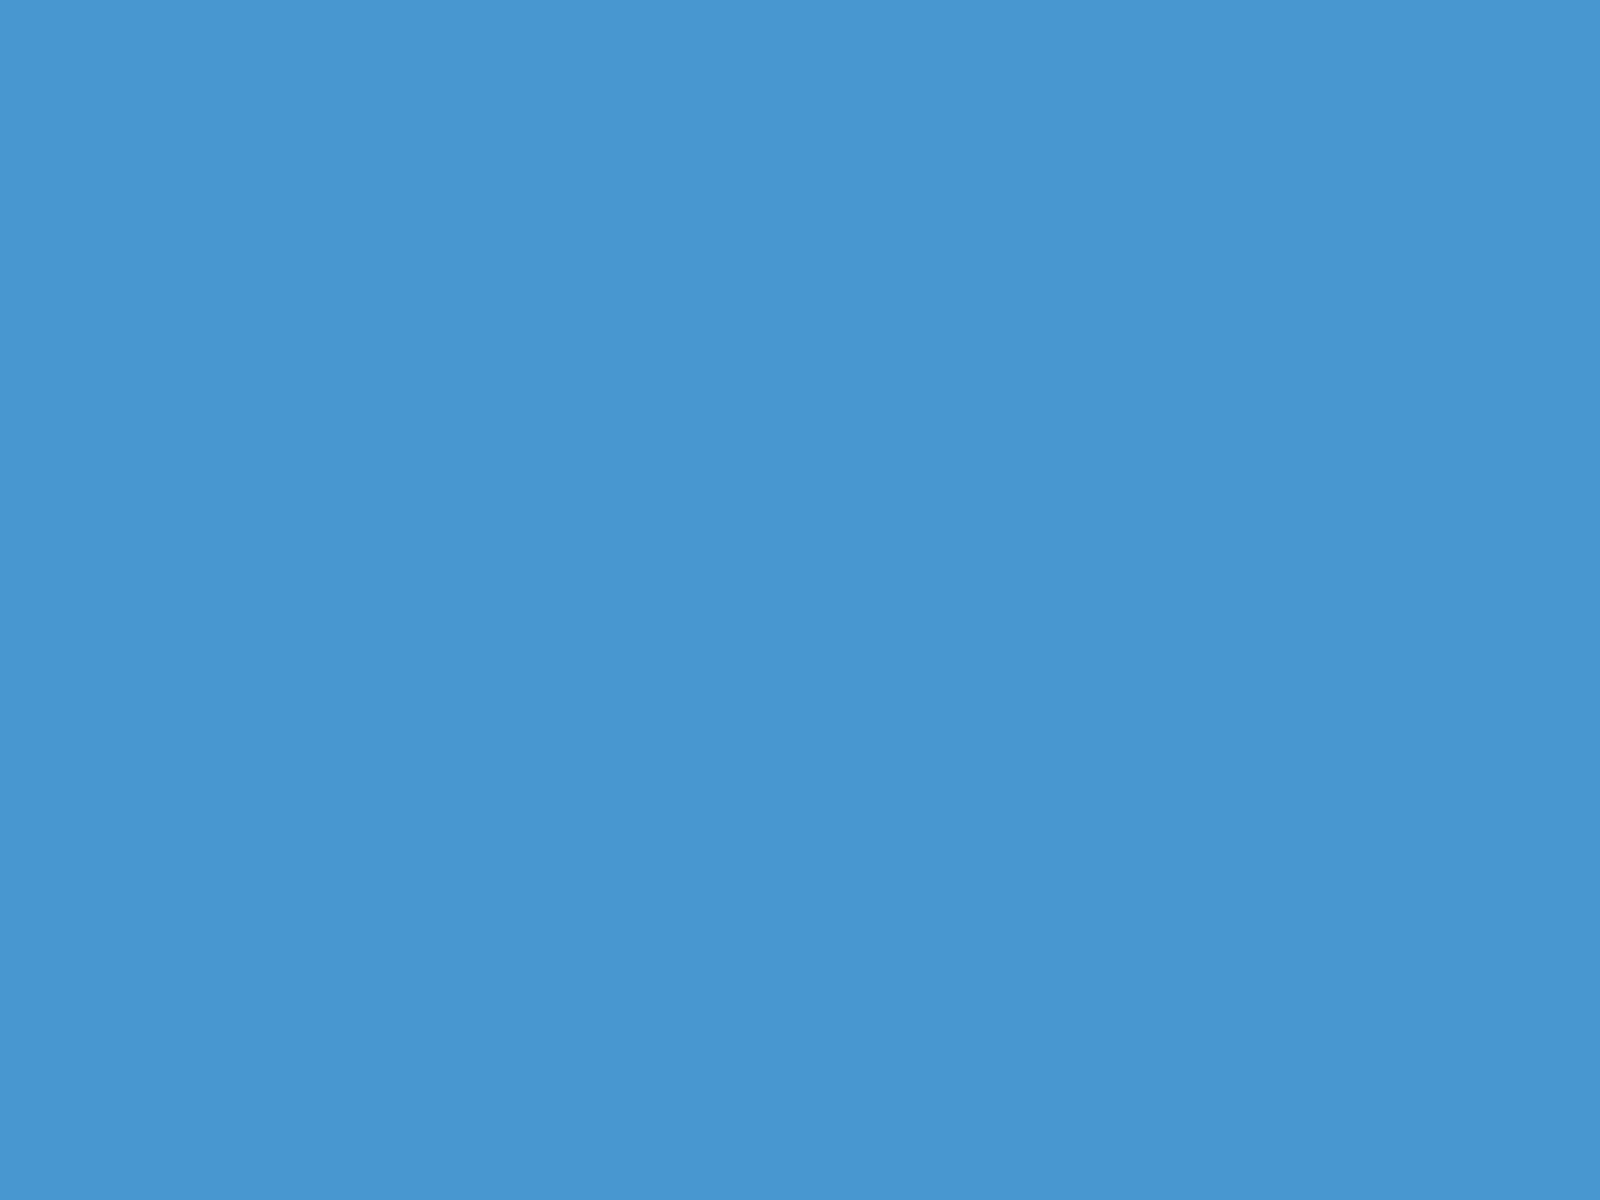 1600x1200 Celestial Blue Solid Color Background